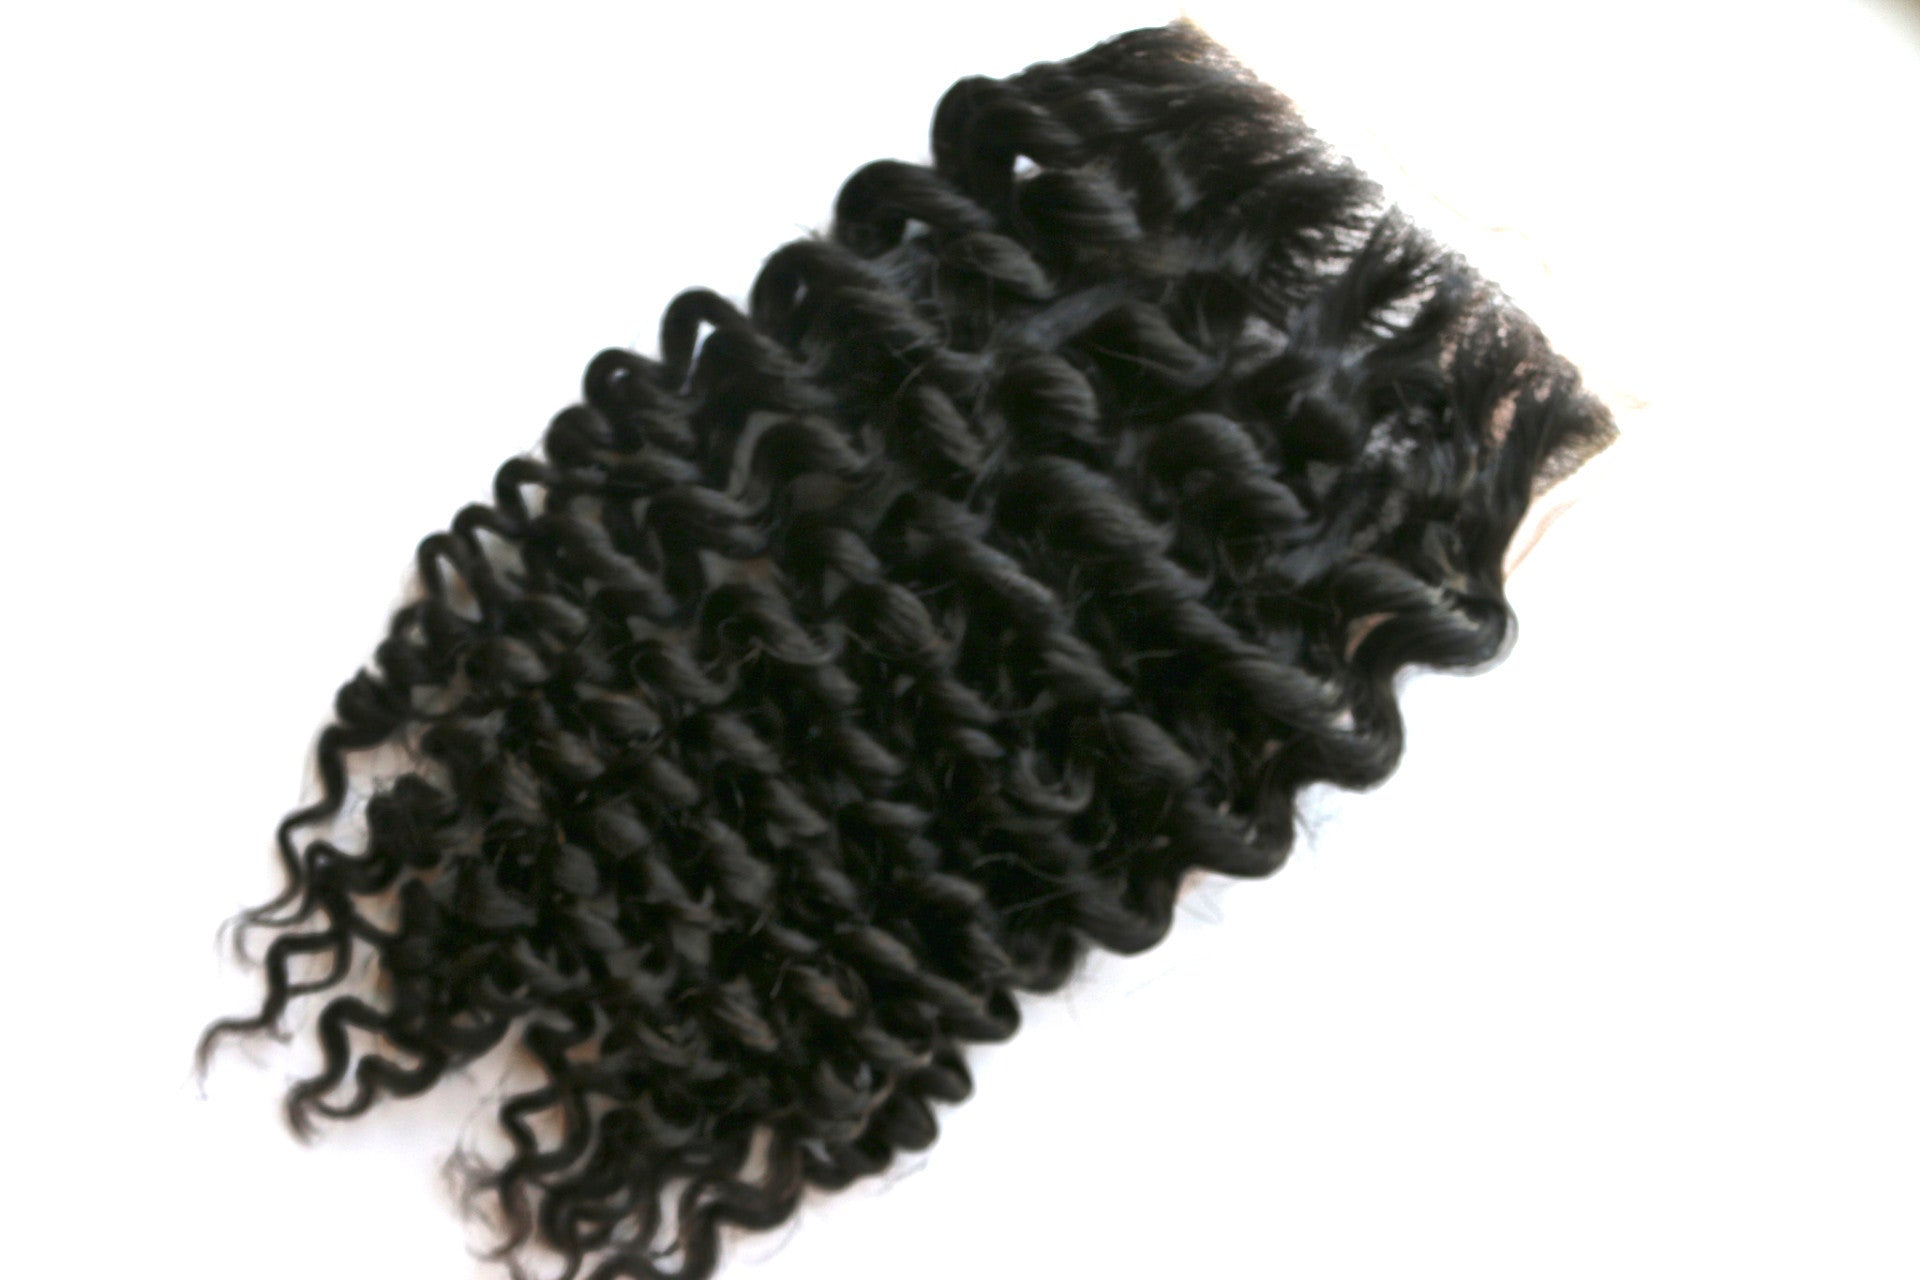 "RADIANCE AFRO KINKY CURLY CLOSURE 14"" CHRISTMAS SALE!"